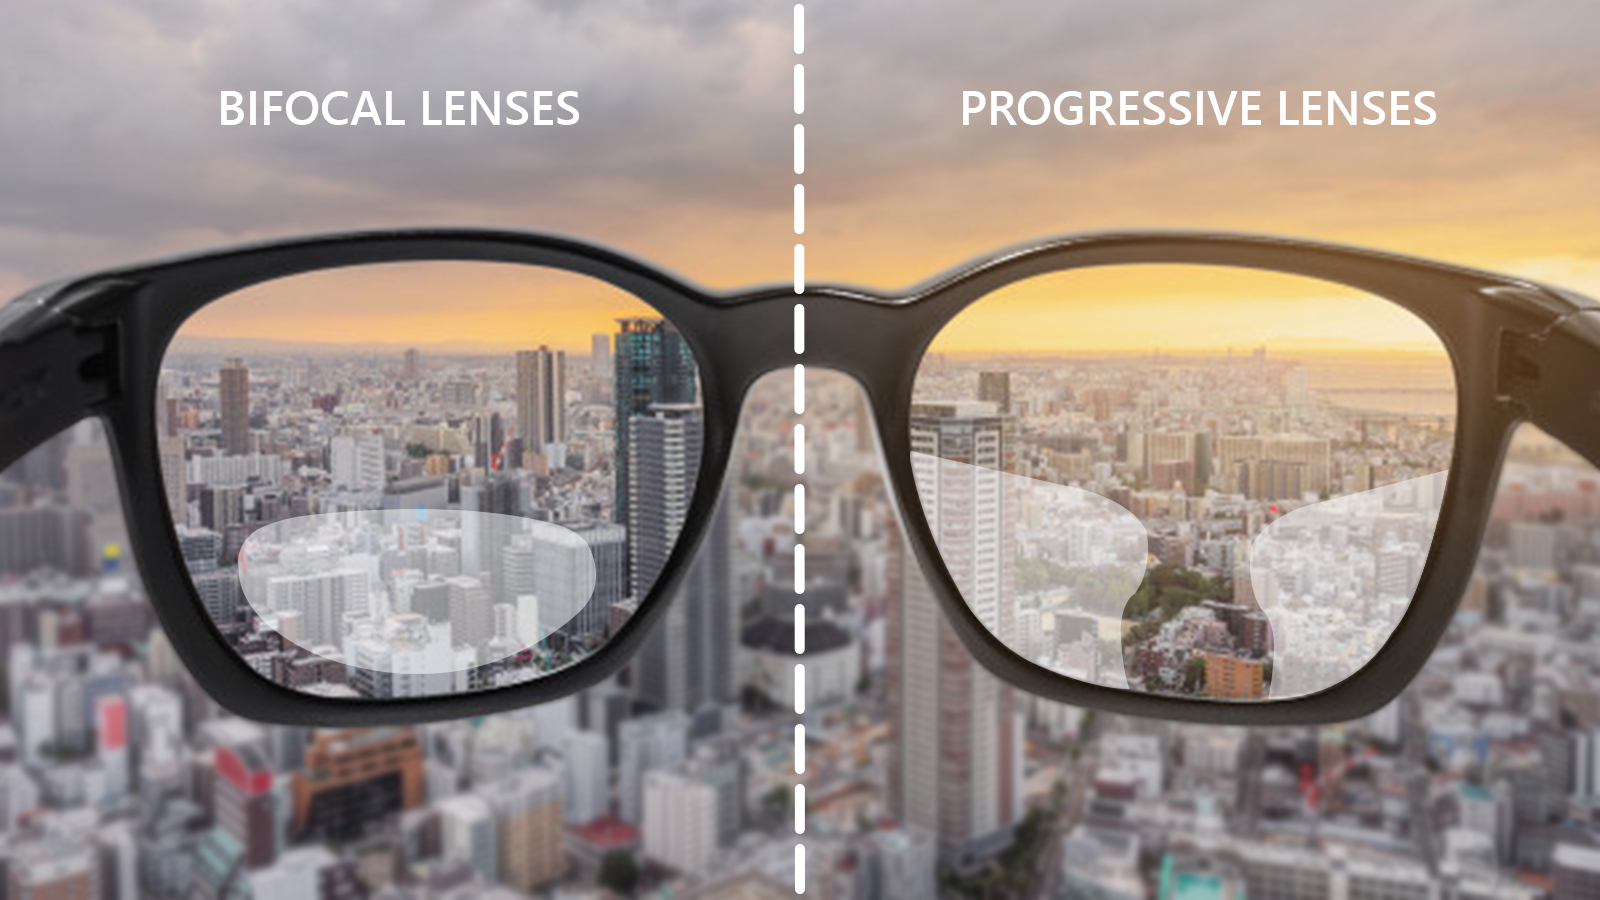 What is the difference between bifocal and progressive lenses?